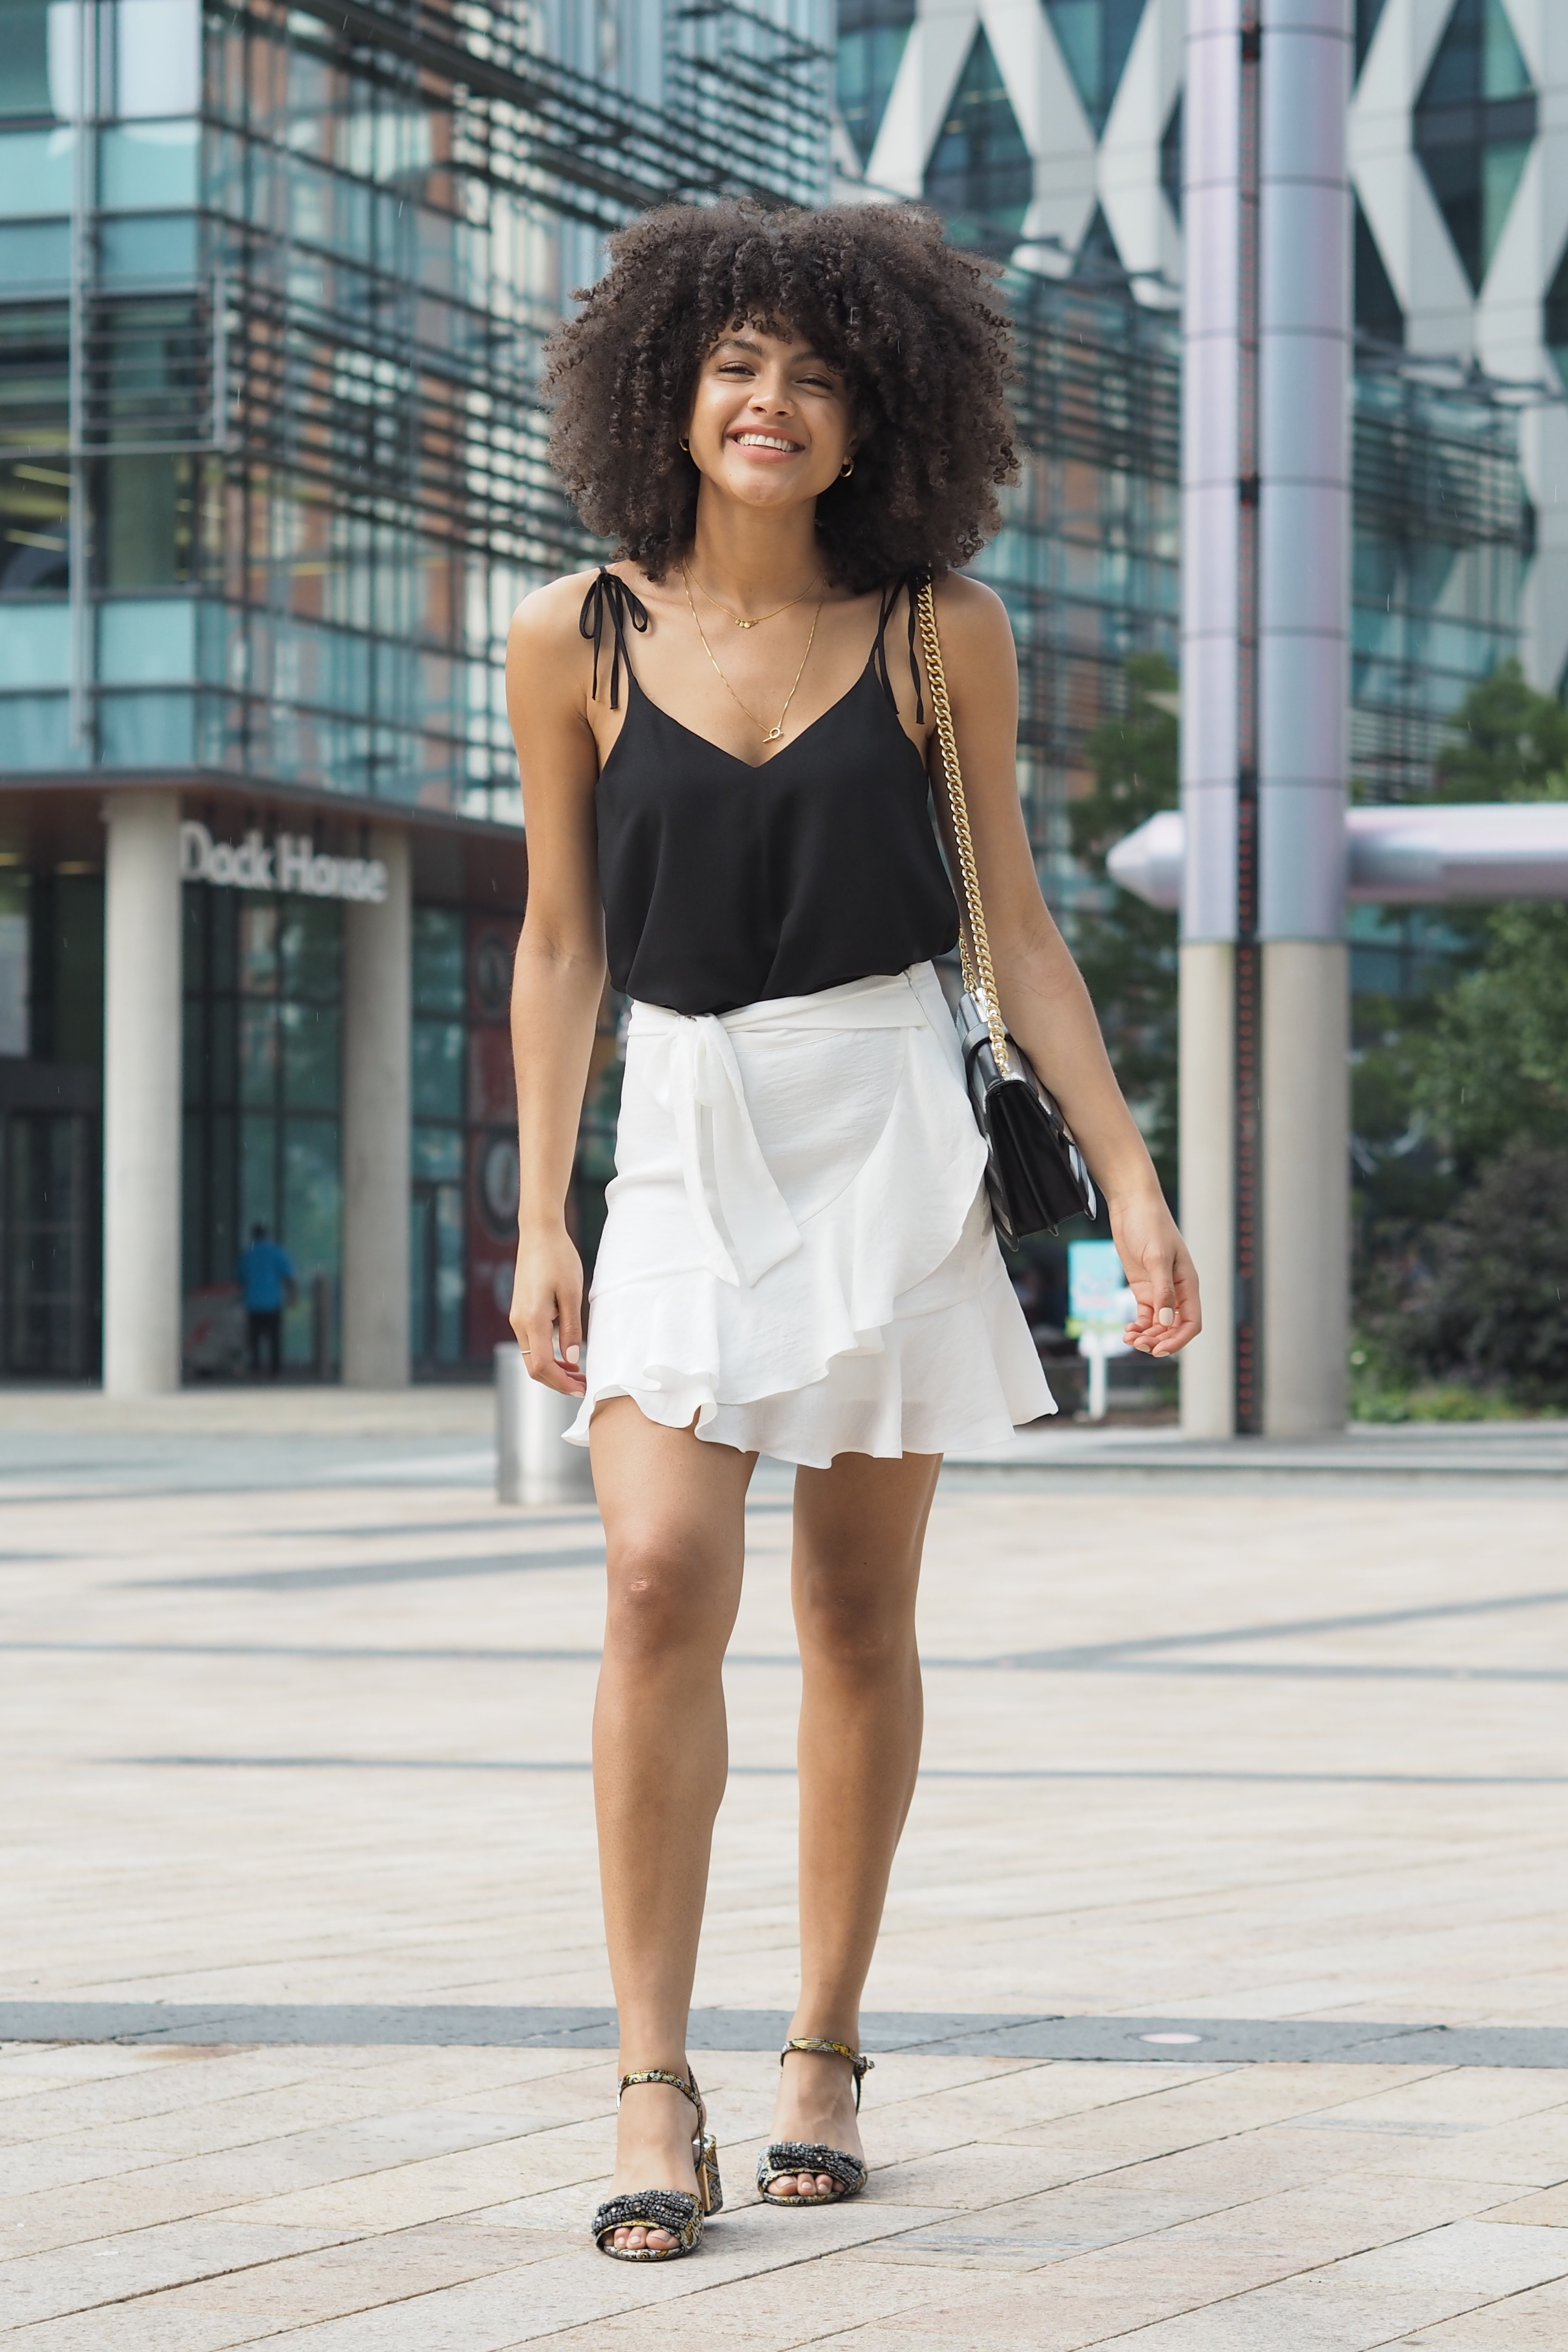 White Ruffle Mini Skirt and Black Cami Spring Summer Outfit